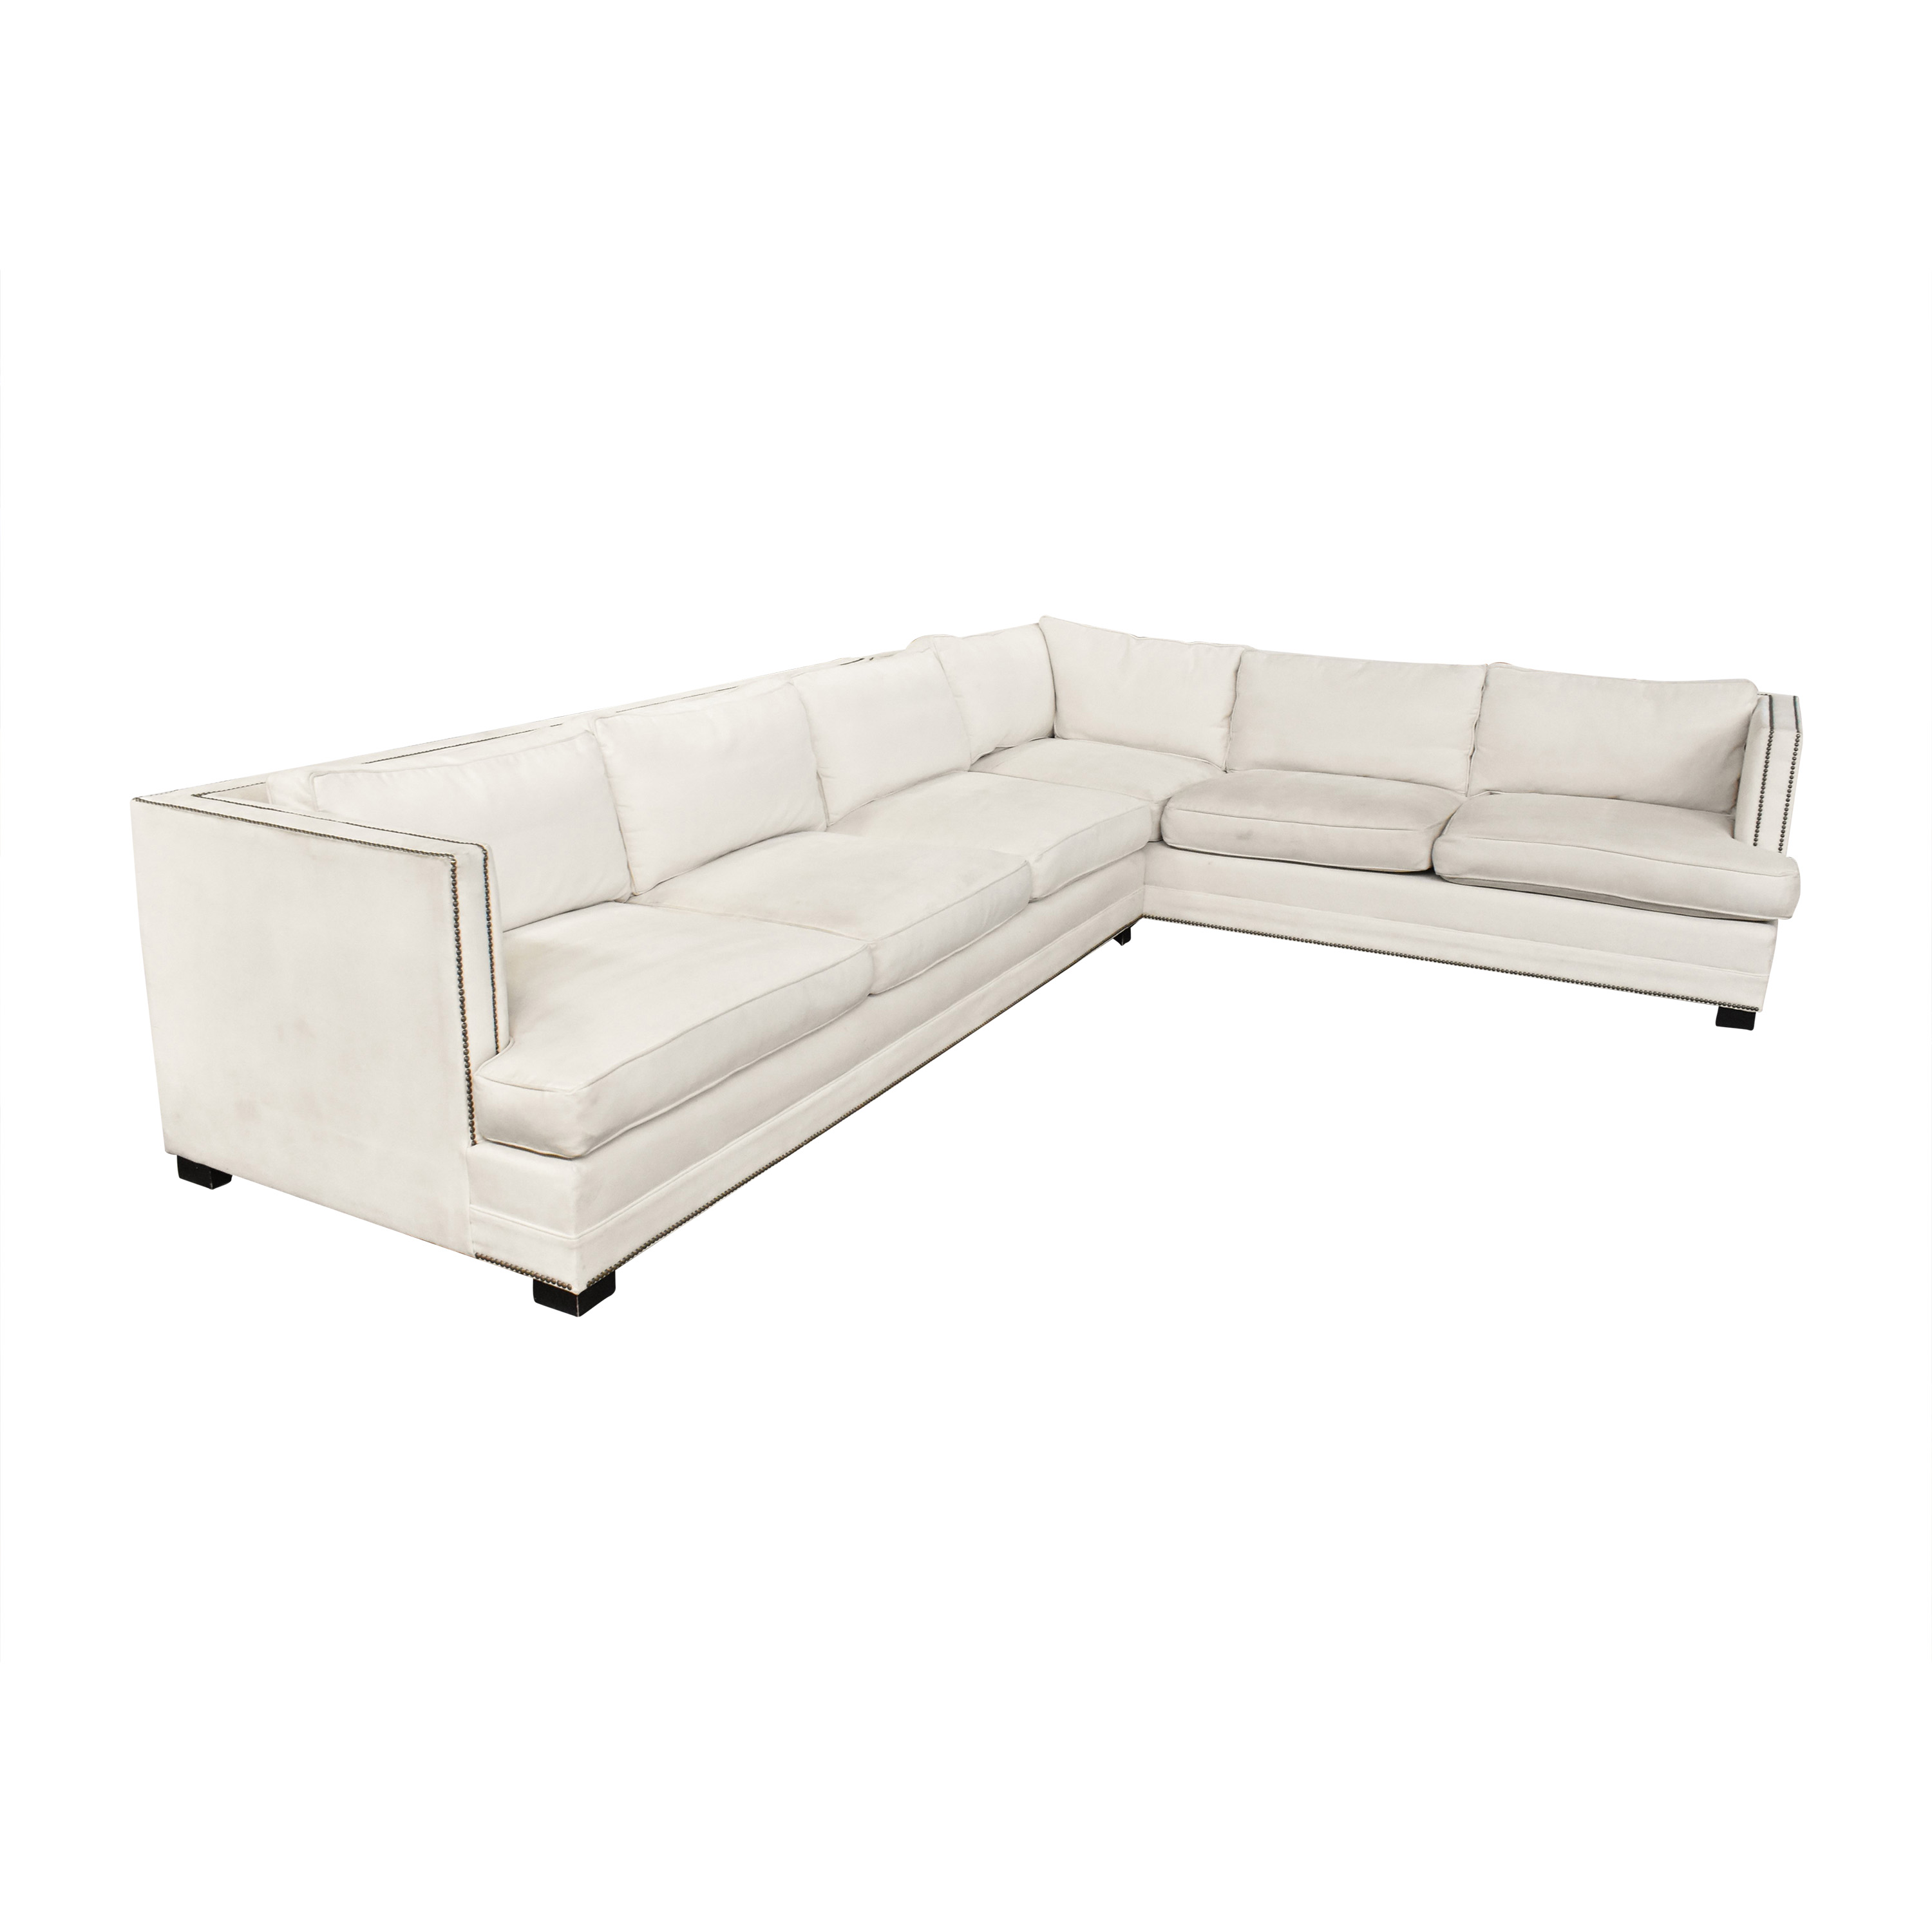 Restoration Hardware Restoration Hardware Keaton Sectional Sofa by Mitchell Gold + Bob Williams price